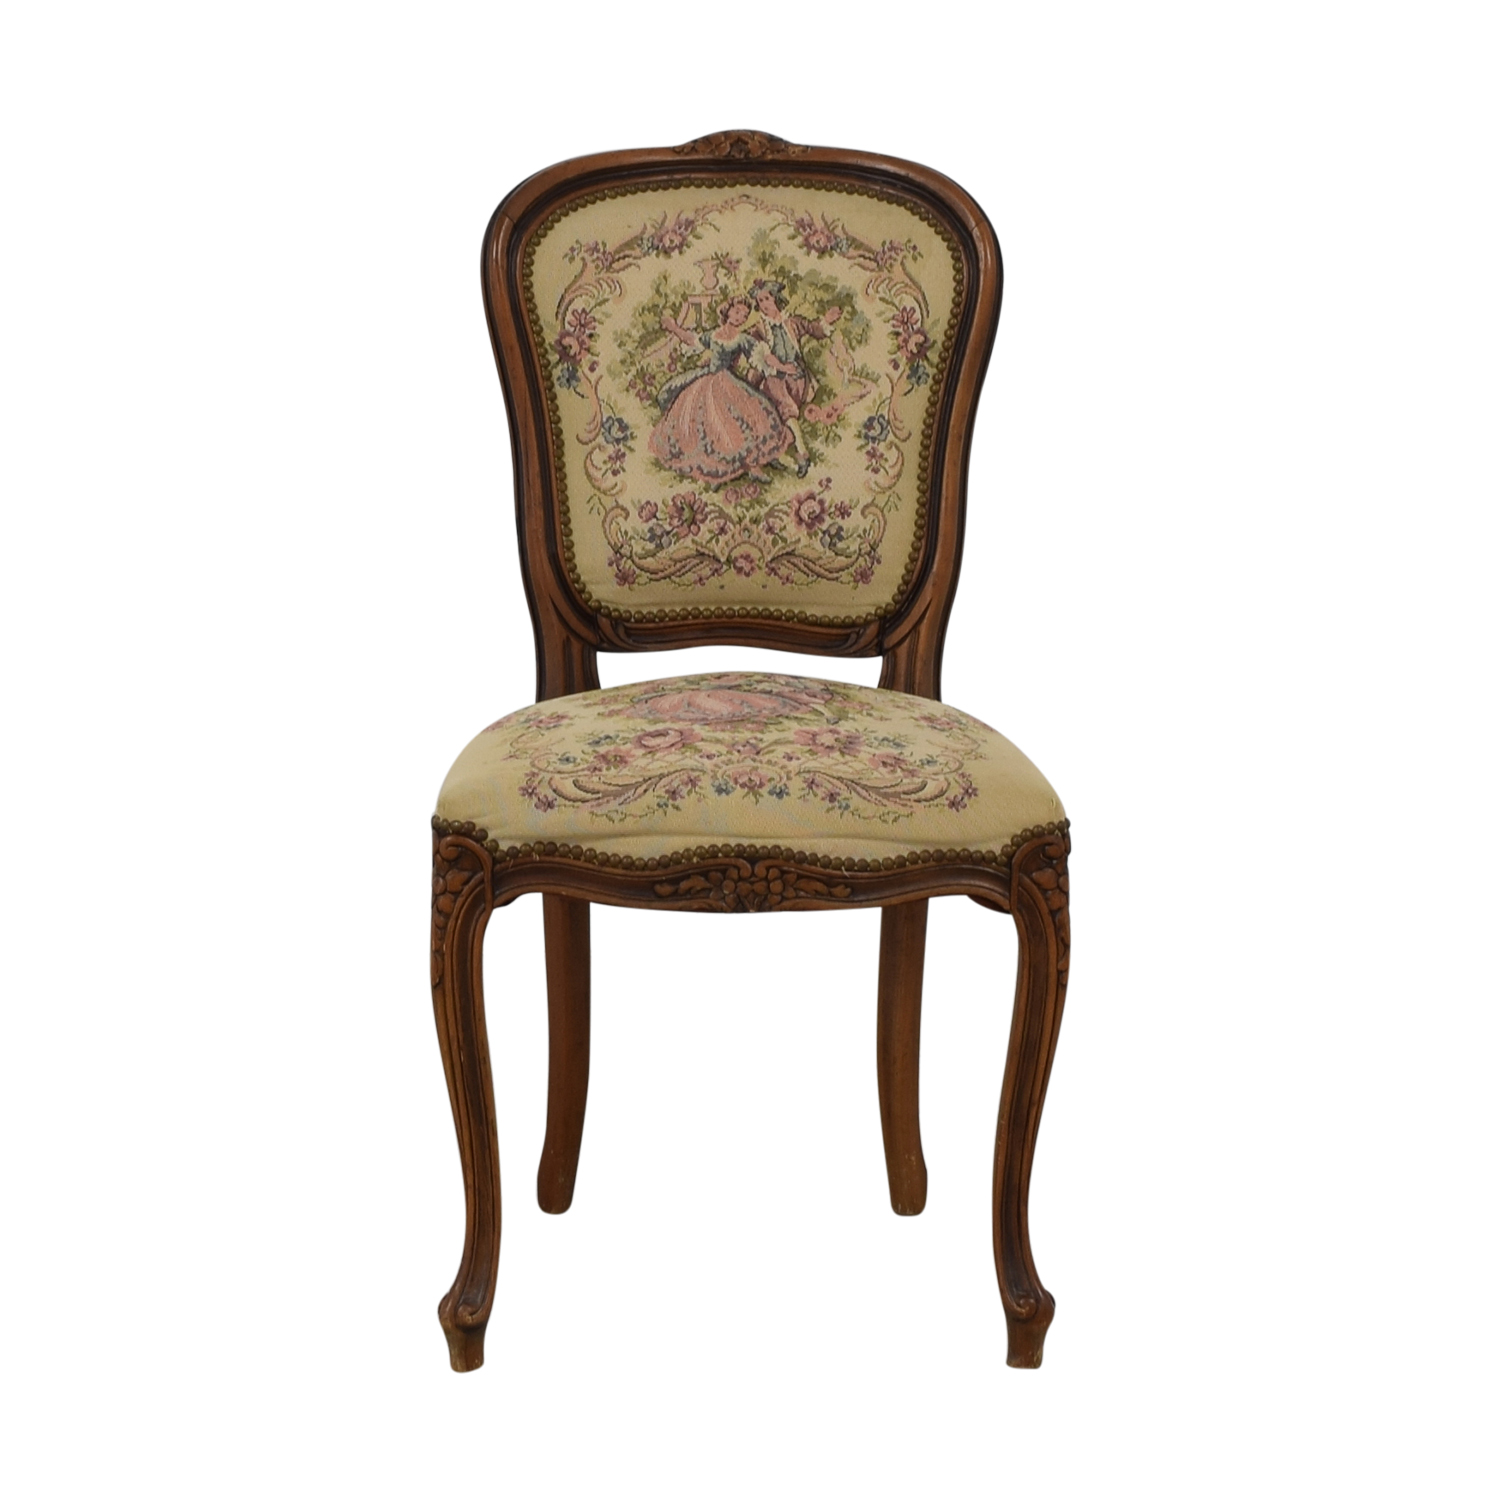 Chateau d'Ax Antique Chair / Accent Chairs